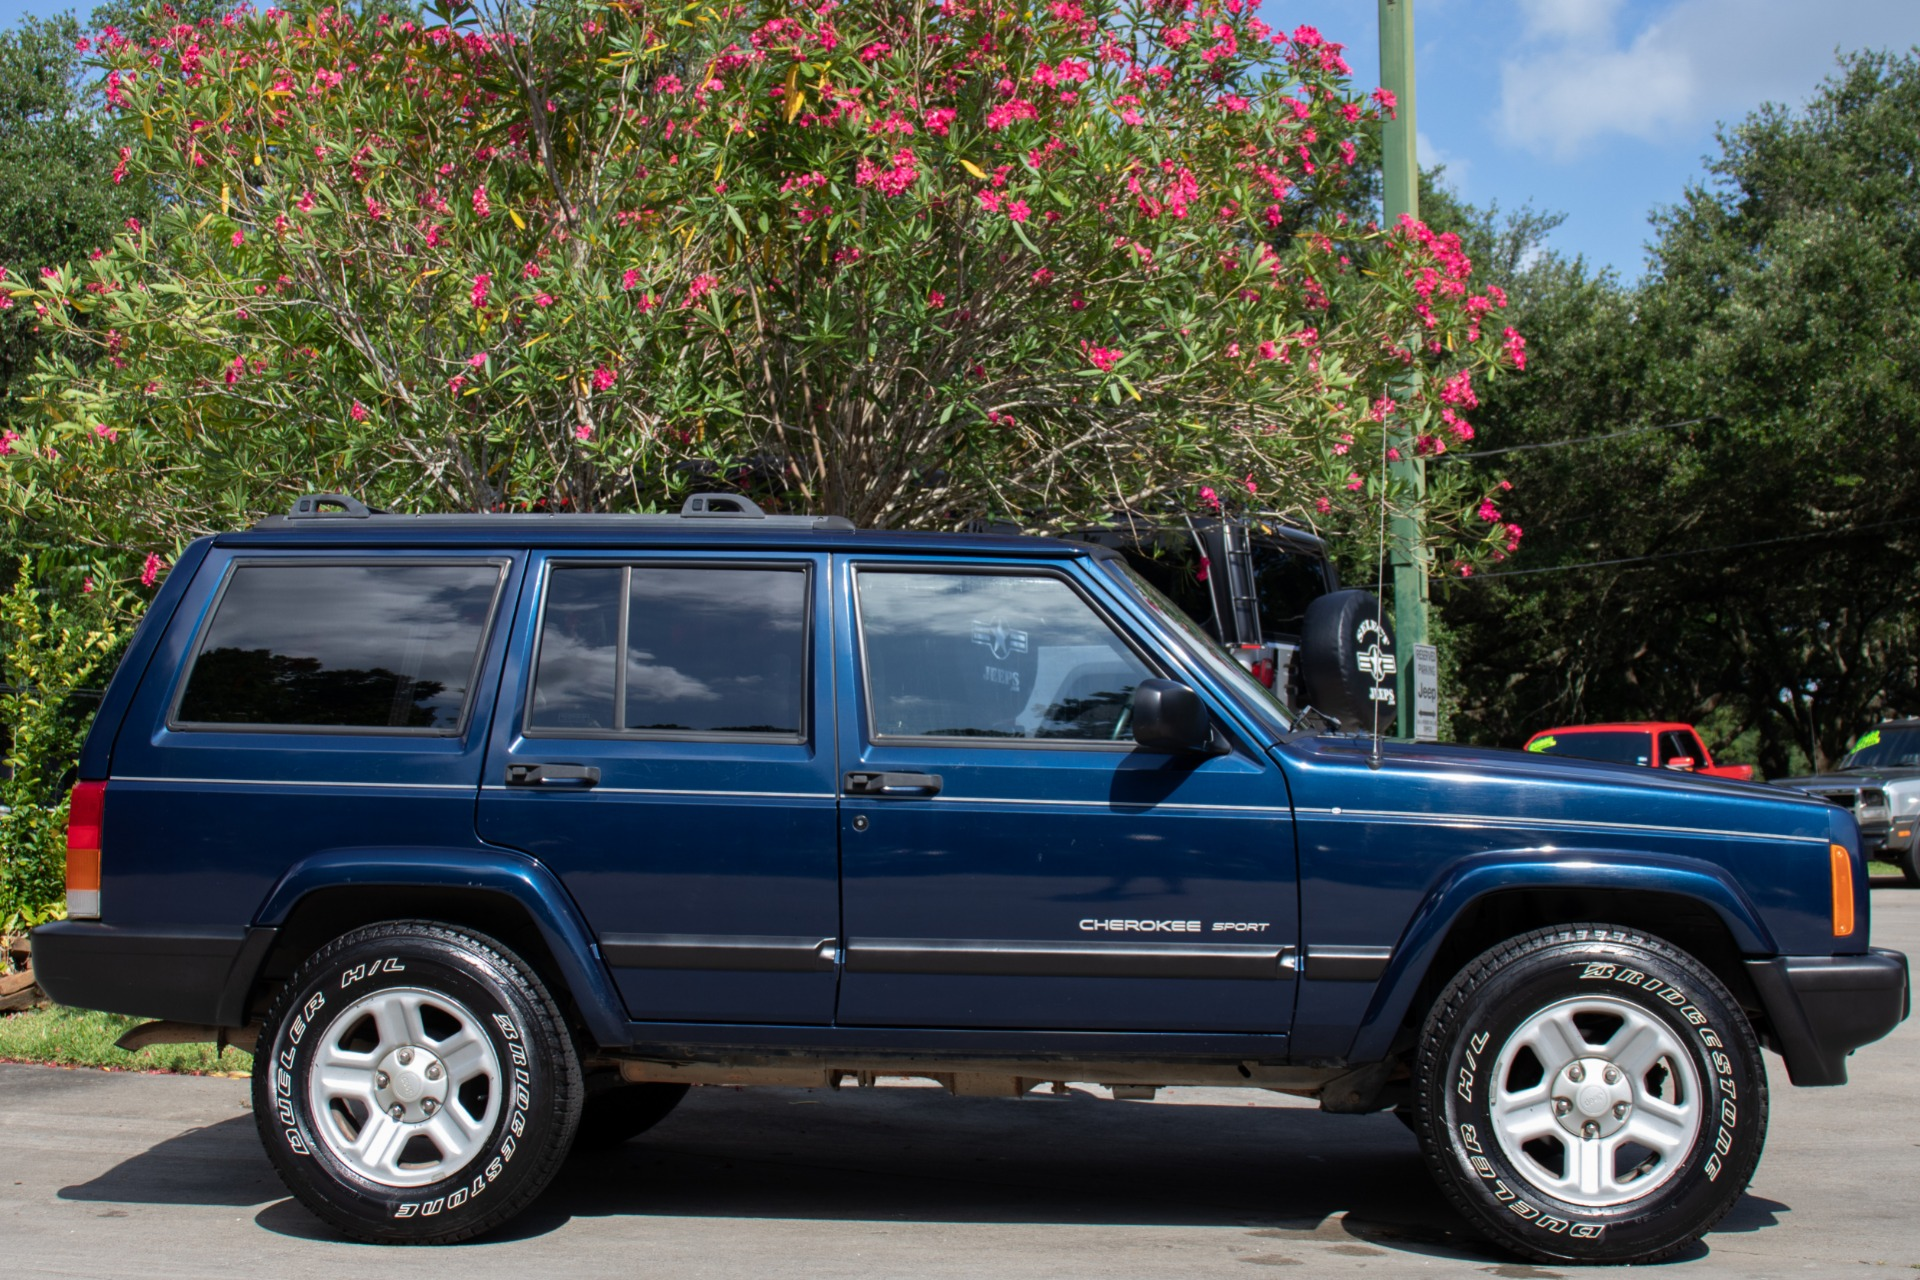 Used 2001 Jeep Cherokee Sport For Sale 6 995 Select Jeeps Inc Stock 535499